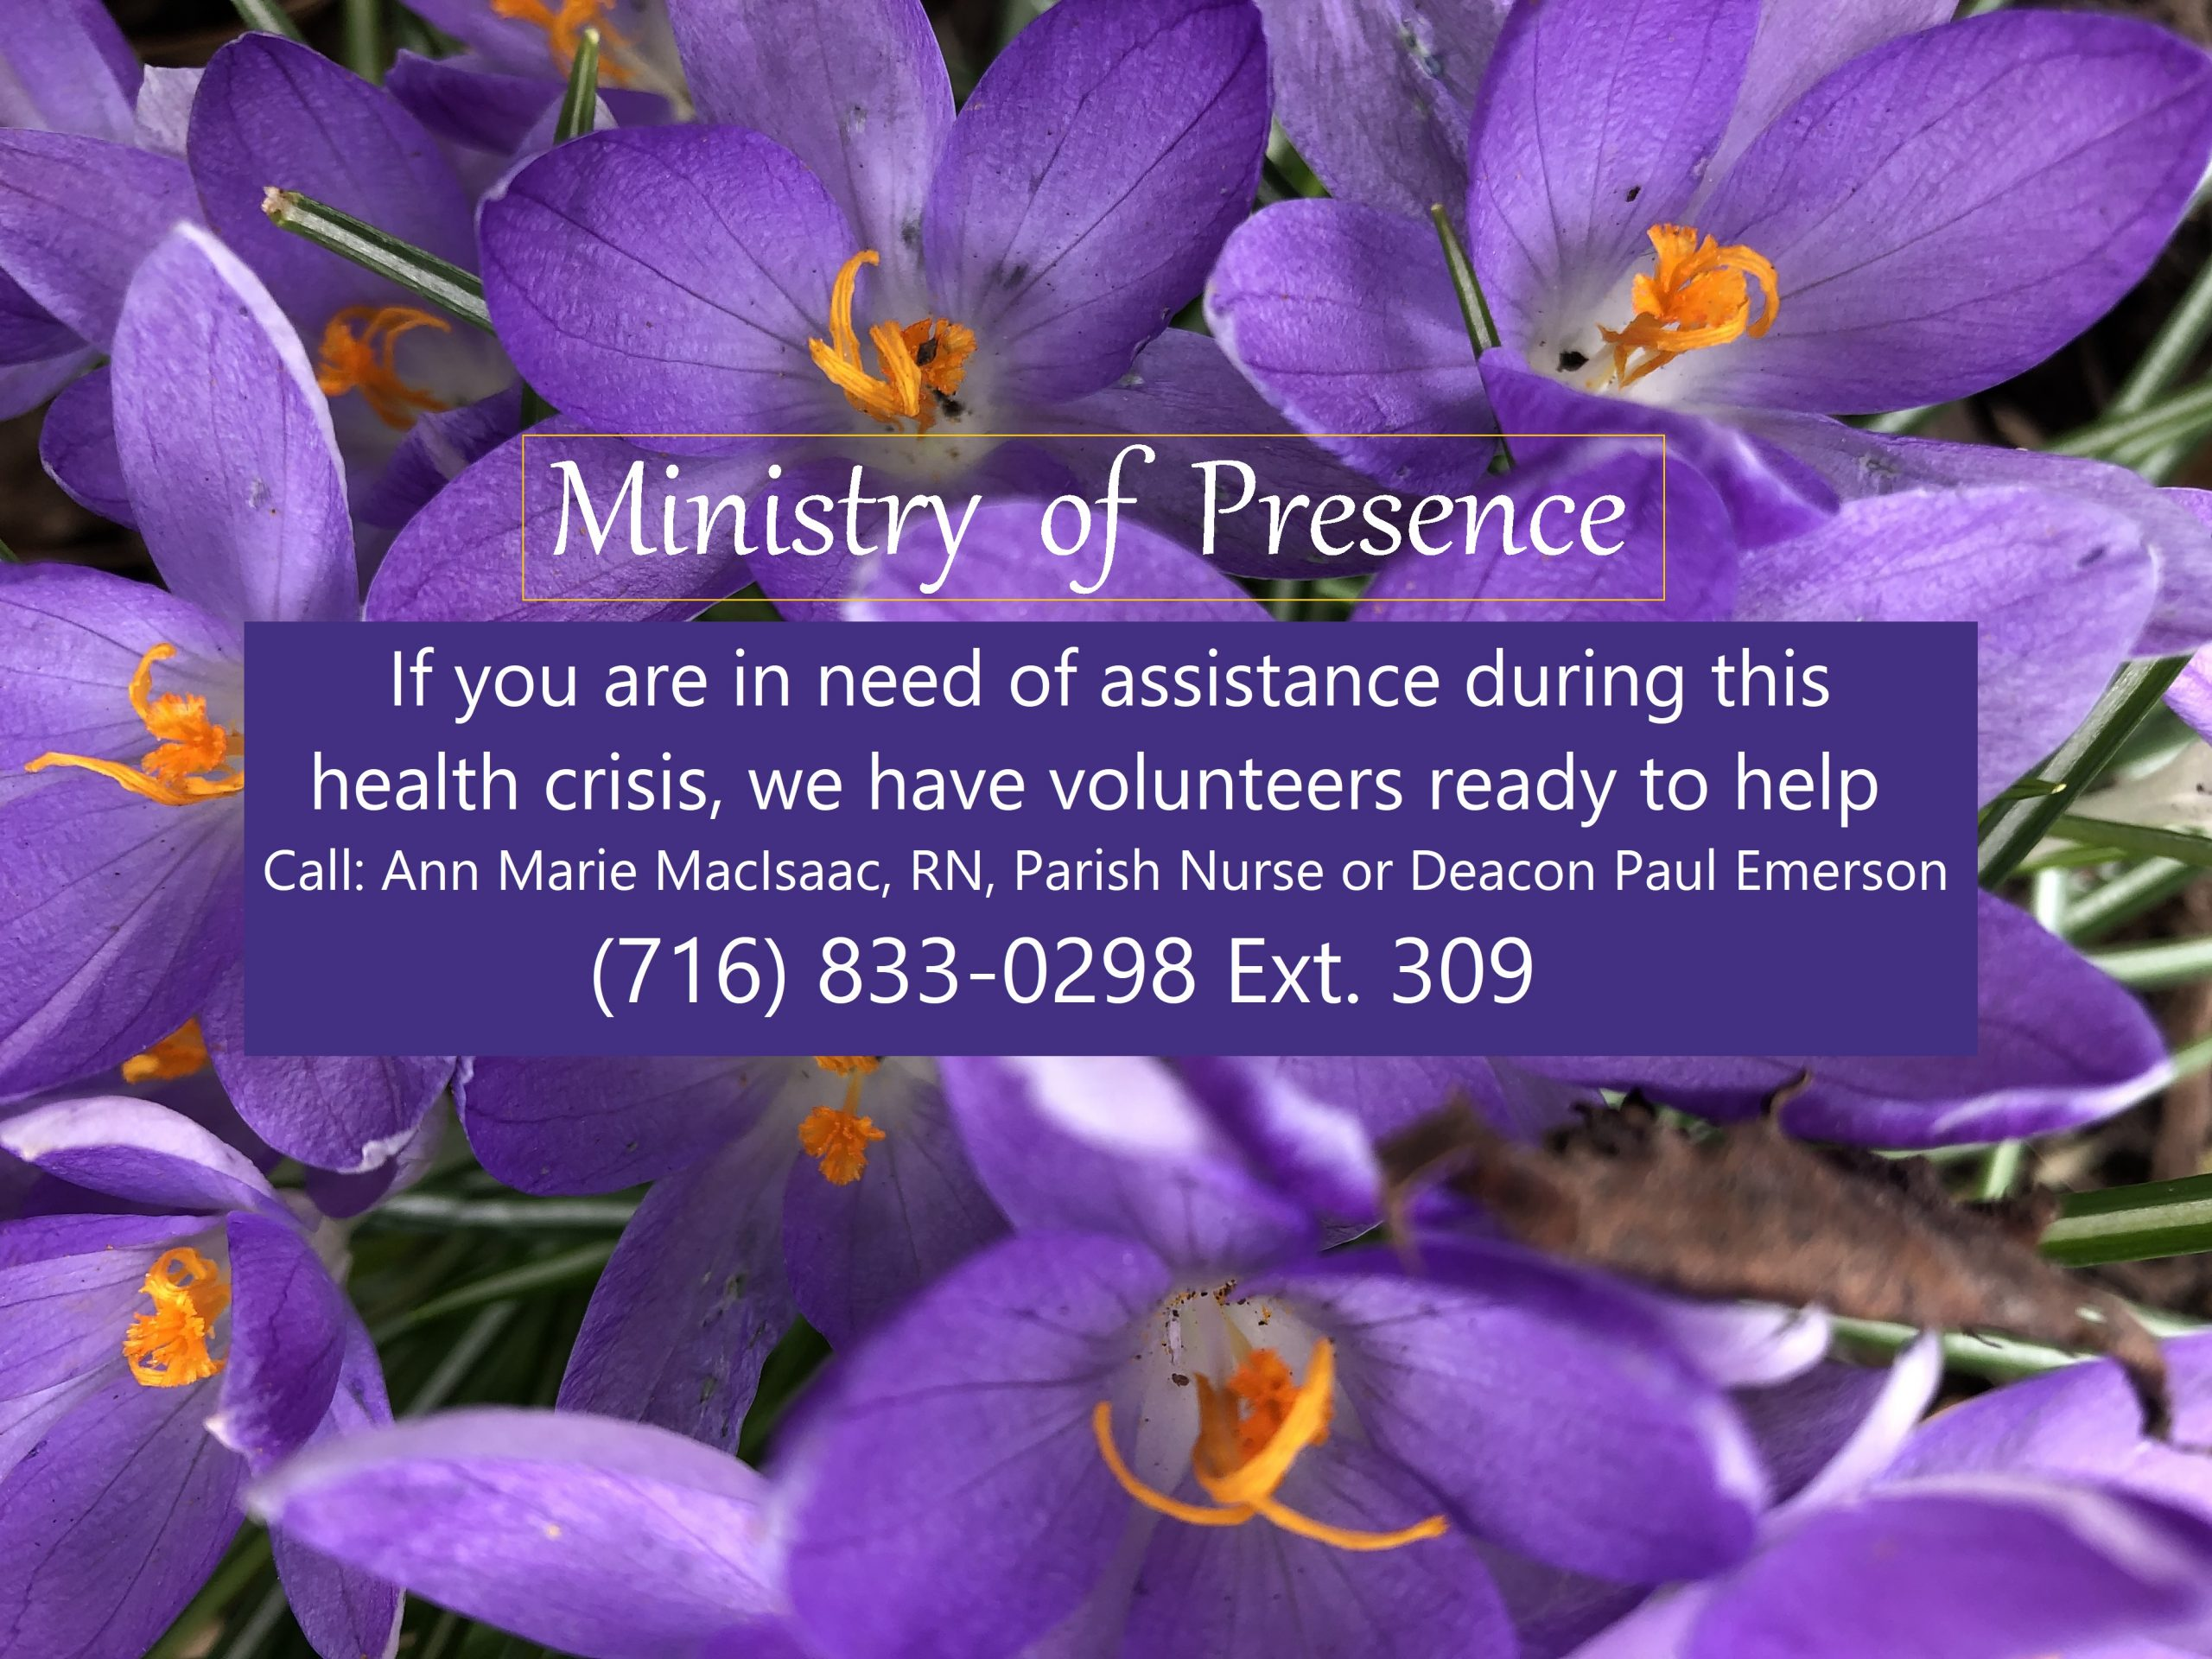 Ministry of presence update april 2020